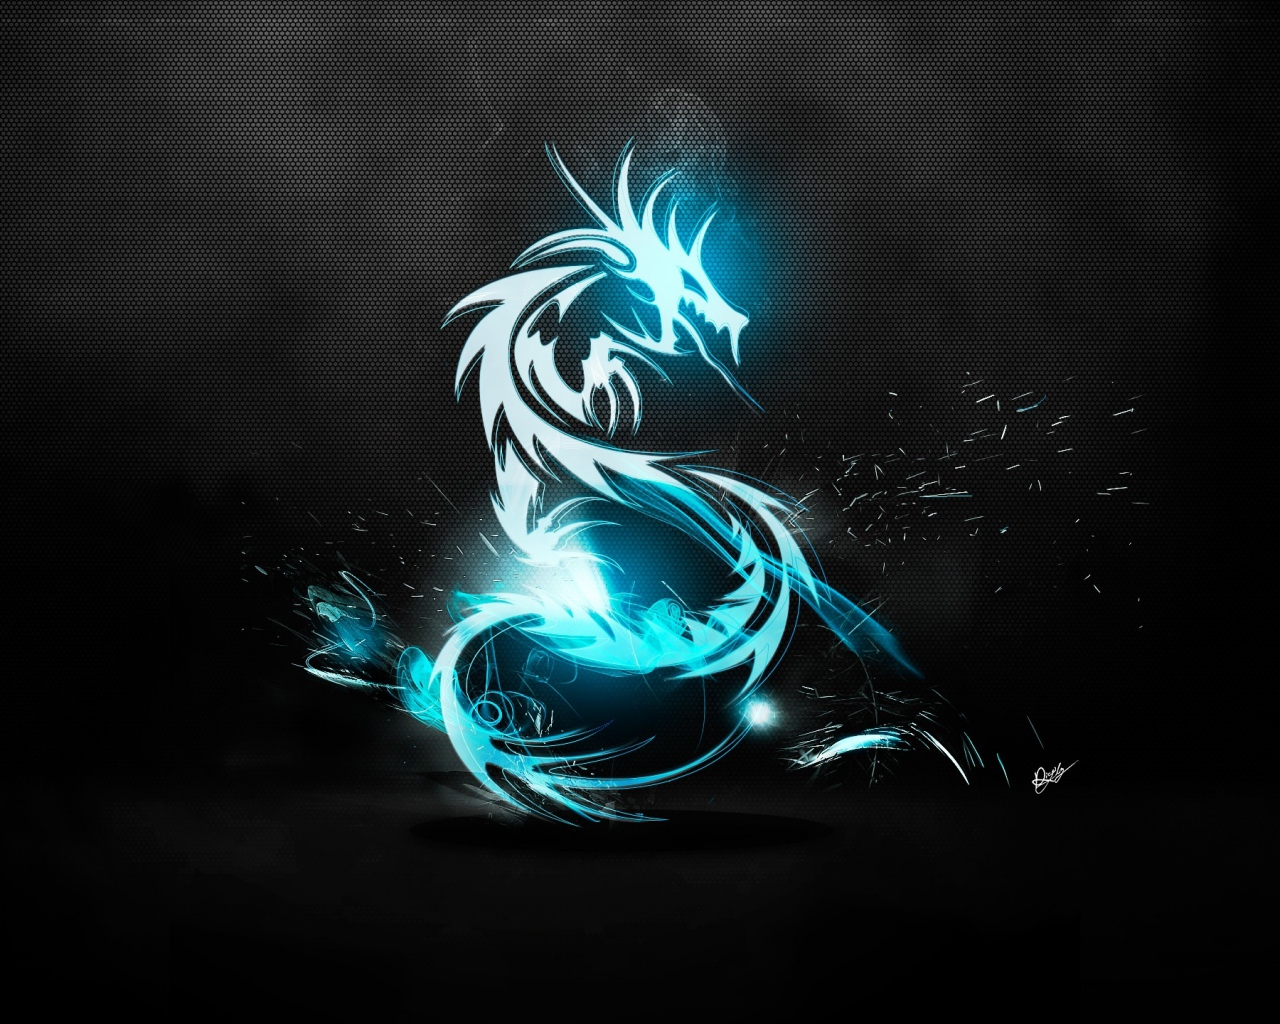 dragon classic 1280x1024 backgrounds